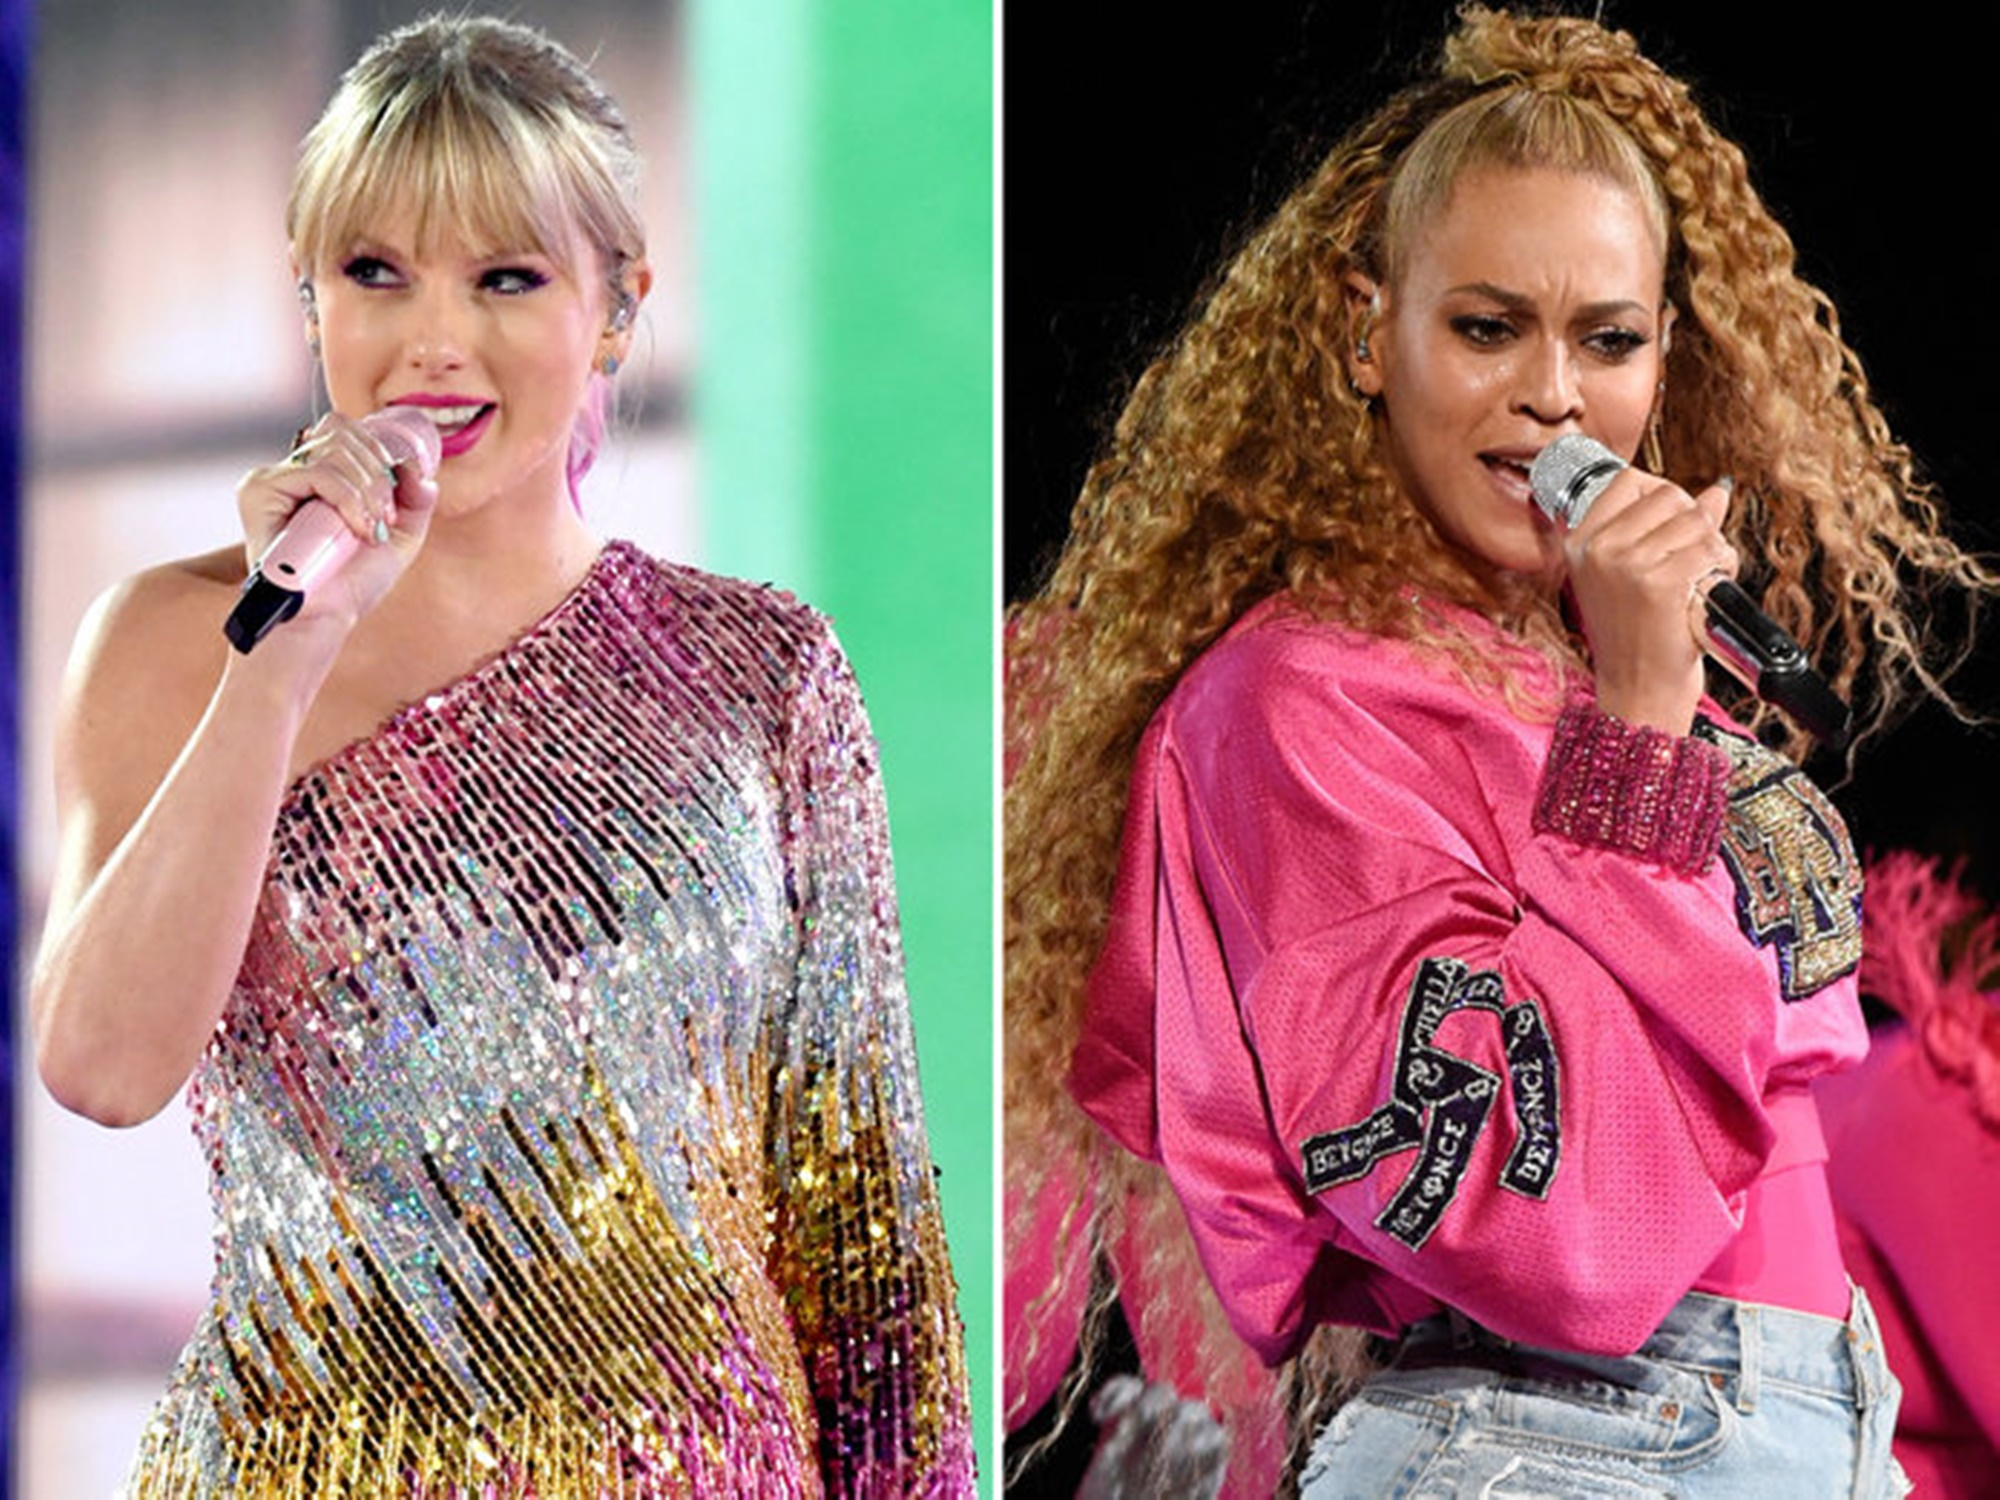 taylor-swift-accused-of-trying-to-copy-beyonce-is-this-really-a-big-deal